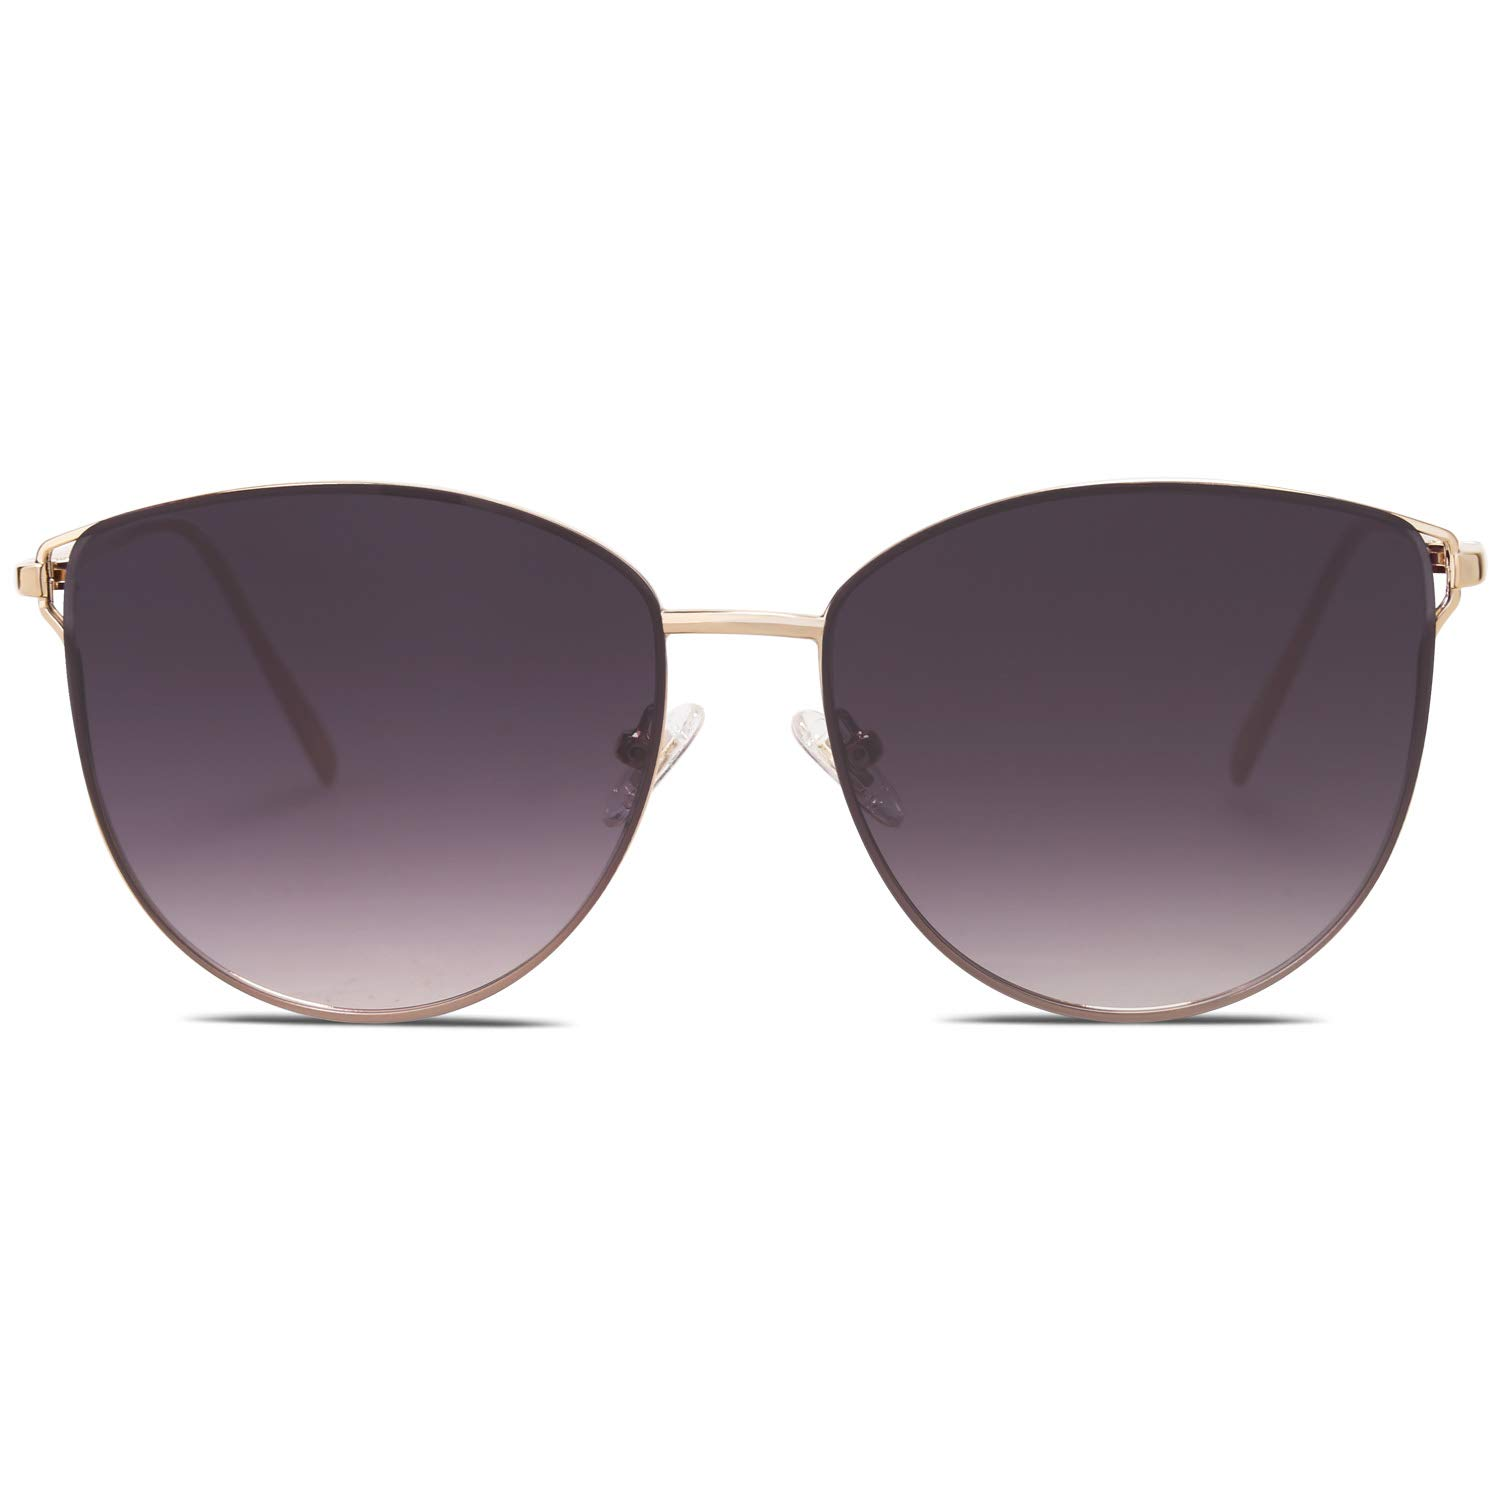 SOJOS Mirrored Flat Lens Fashion Sunglasses for Women SJ1085 SJ2036 with Gold Frame/Gradient Grey Lens by SOJOS